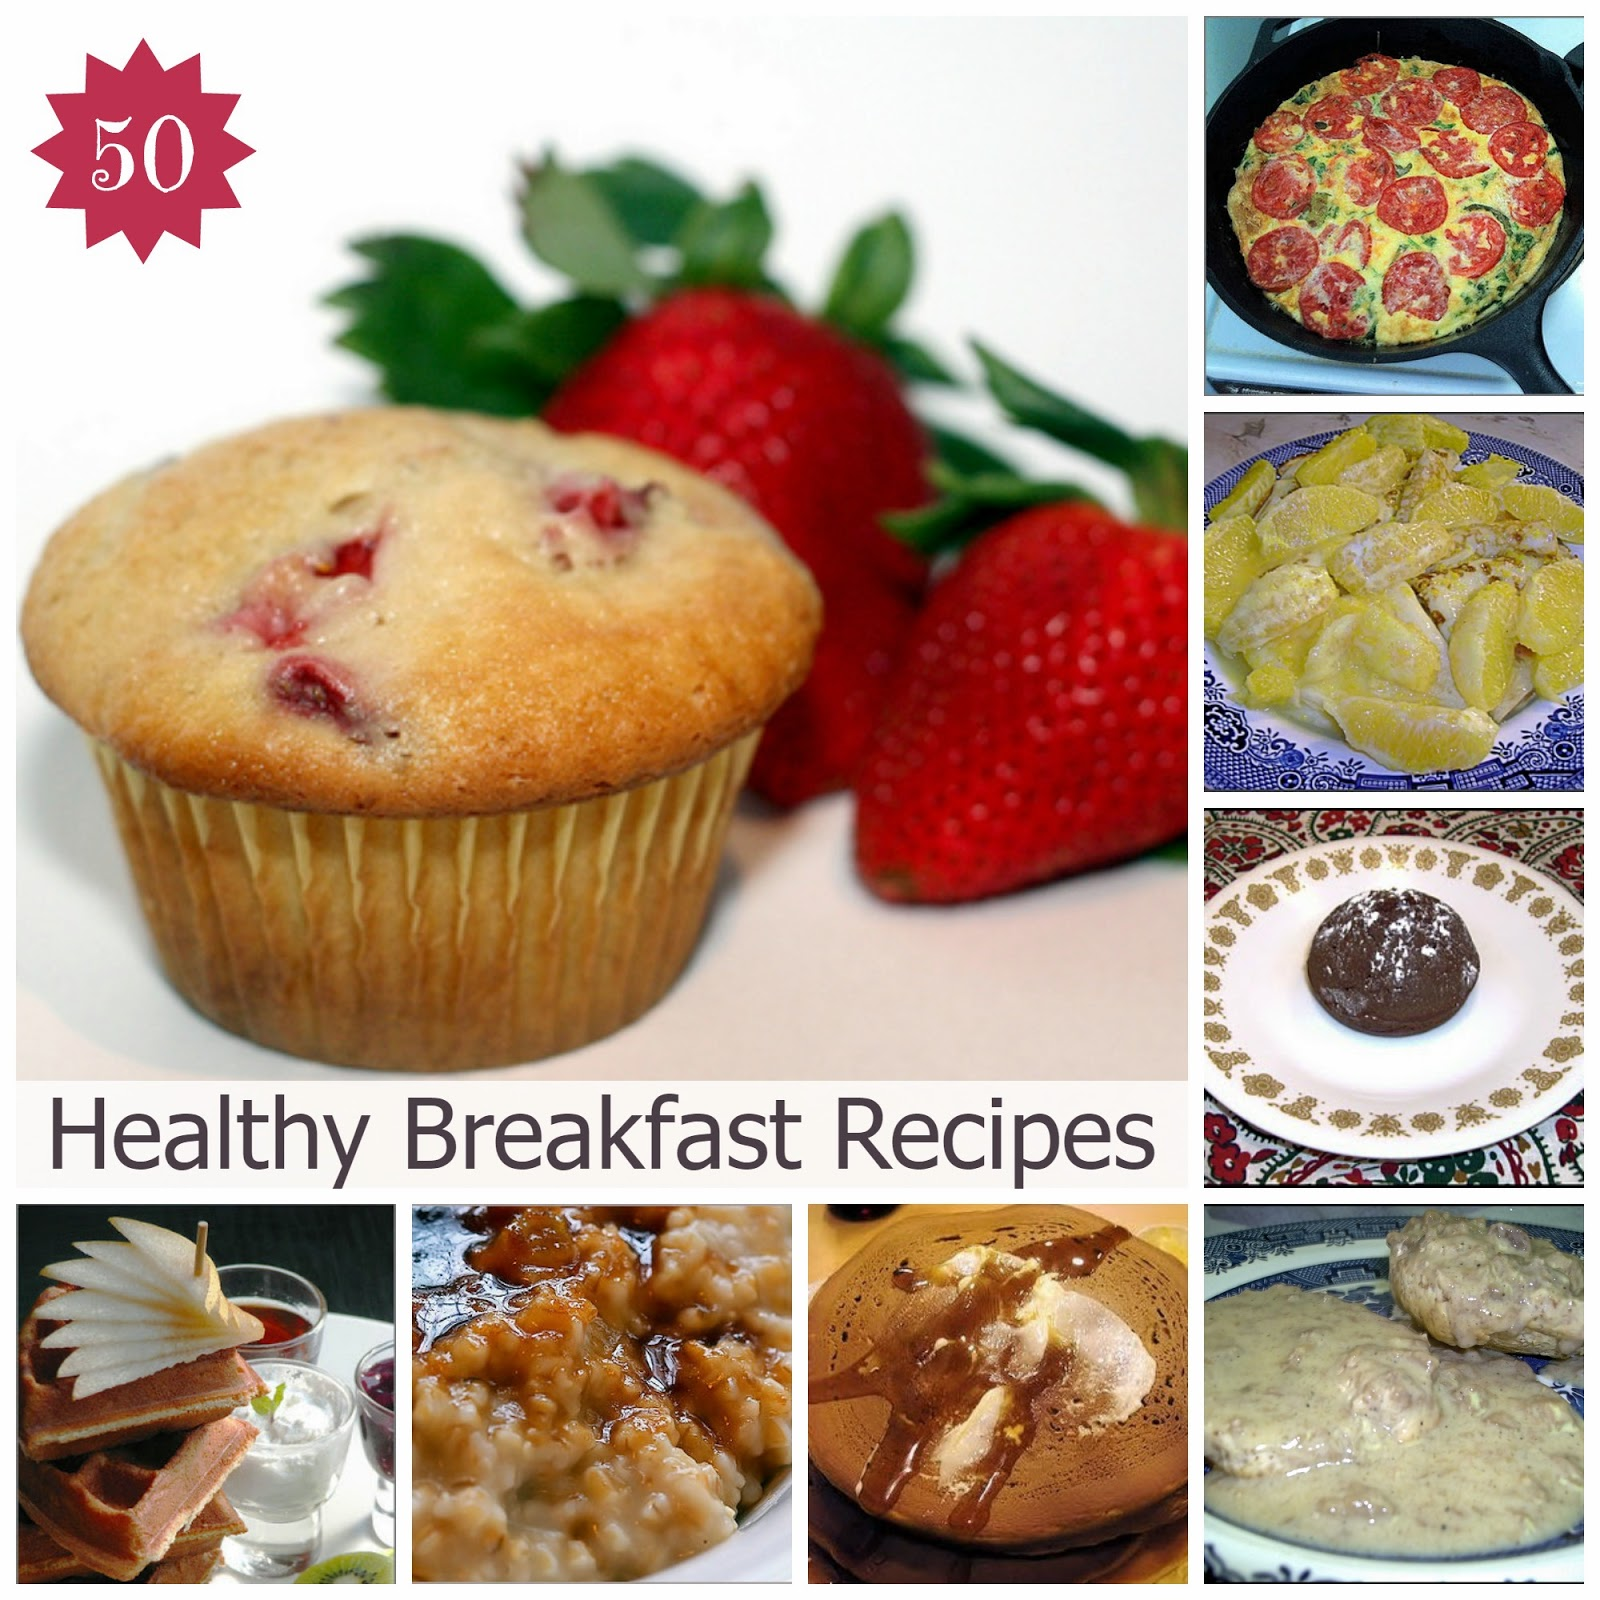 Healthy Breakfast Recipes To Lose Weight | Becky Cooks Lightly #healthybreakfast #weightloss